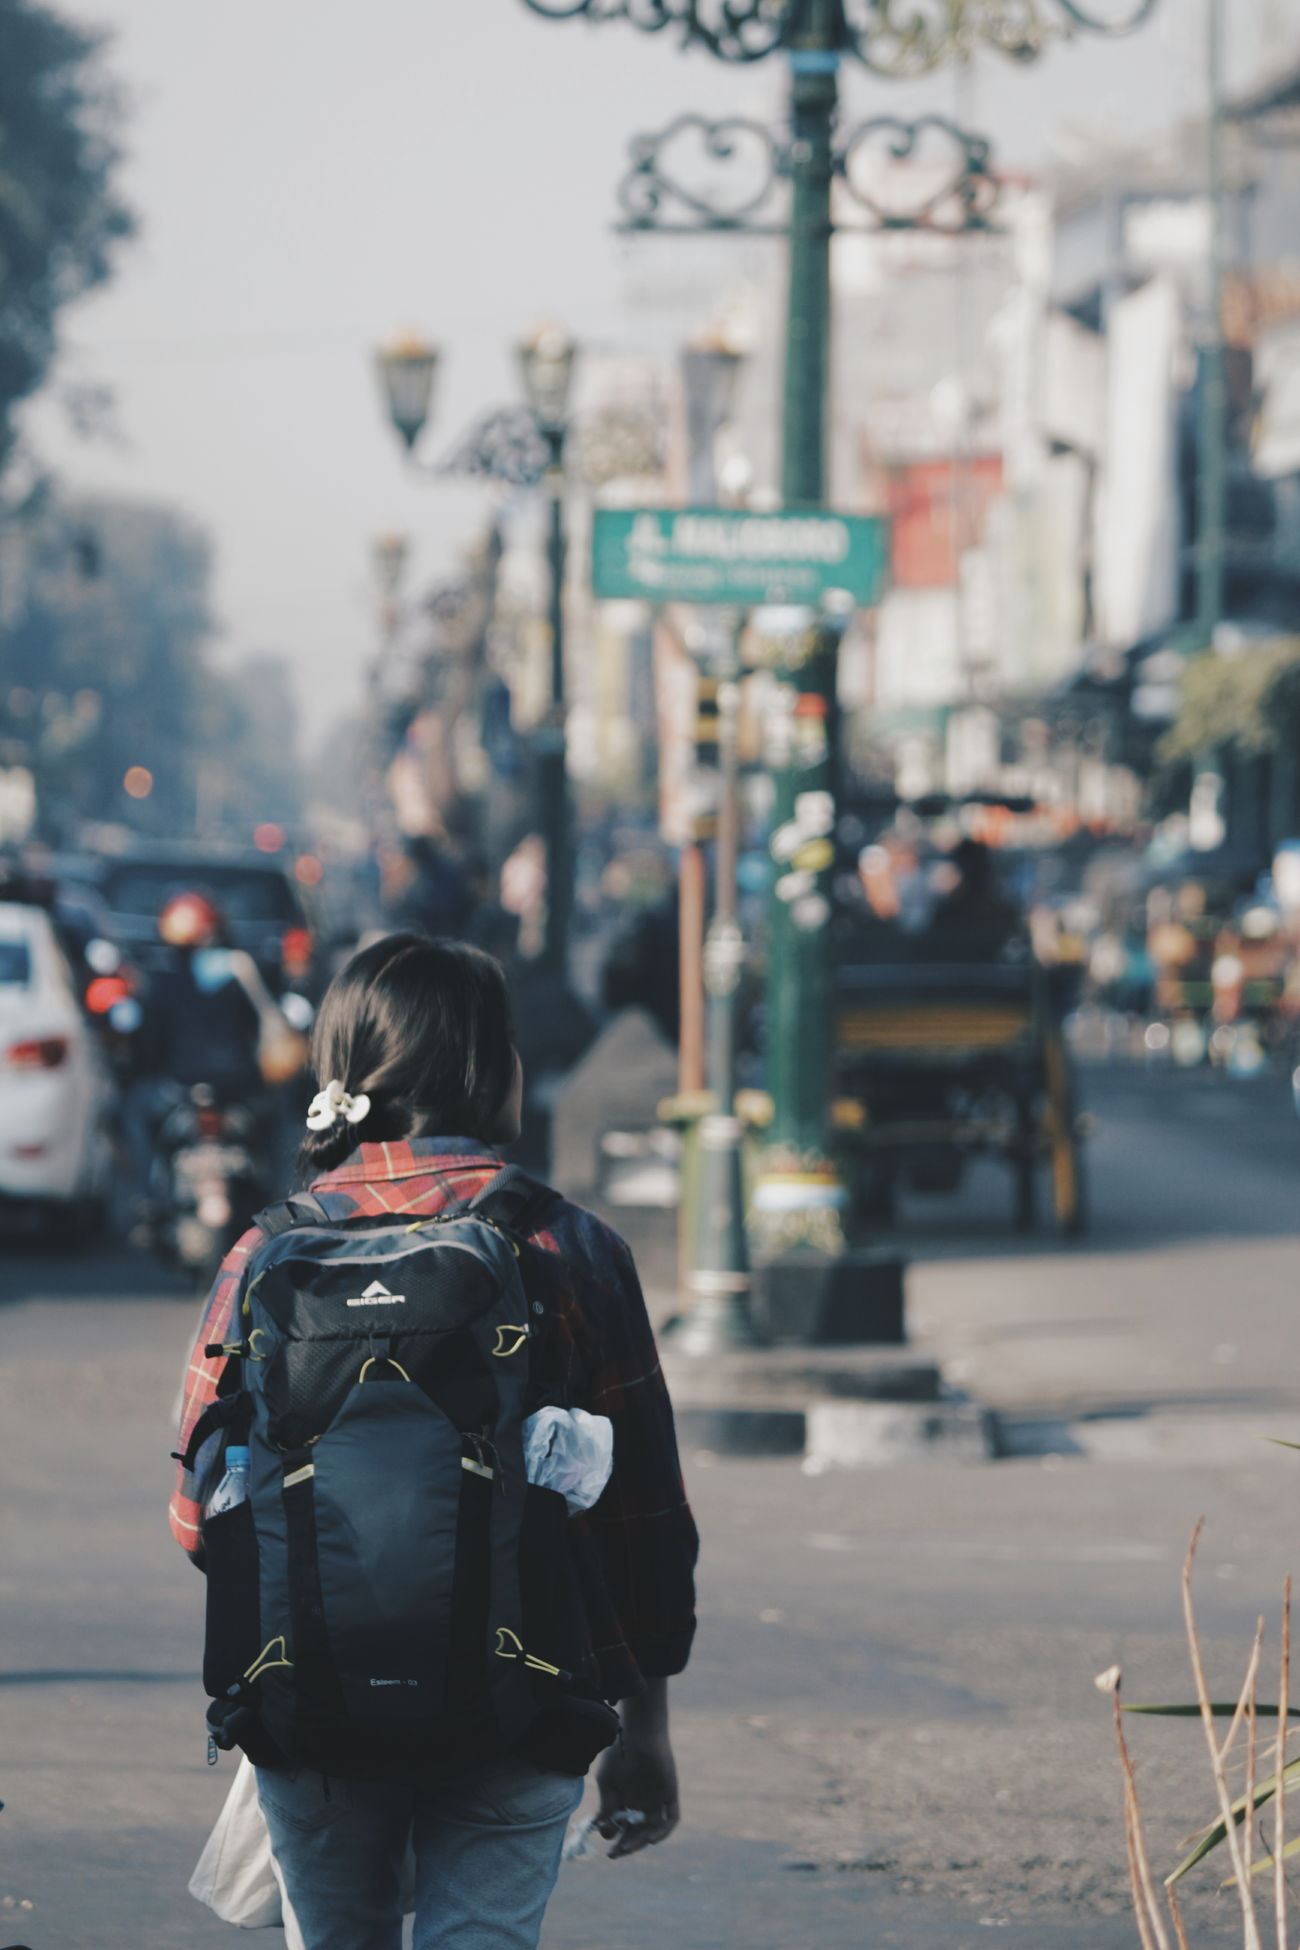 Traveling Home For The Holidays City Rear View Women Warm Clothing Men Outdoors City Life Winter Adult Adults Only People Social Issues One Person Real People Day Only Women Cityscape